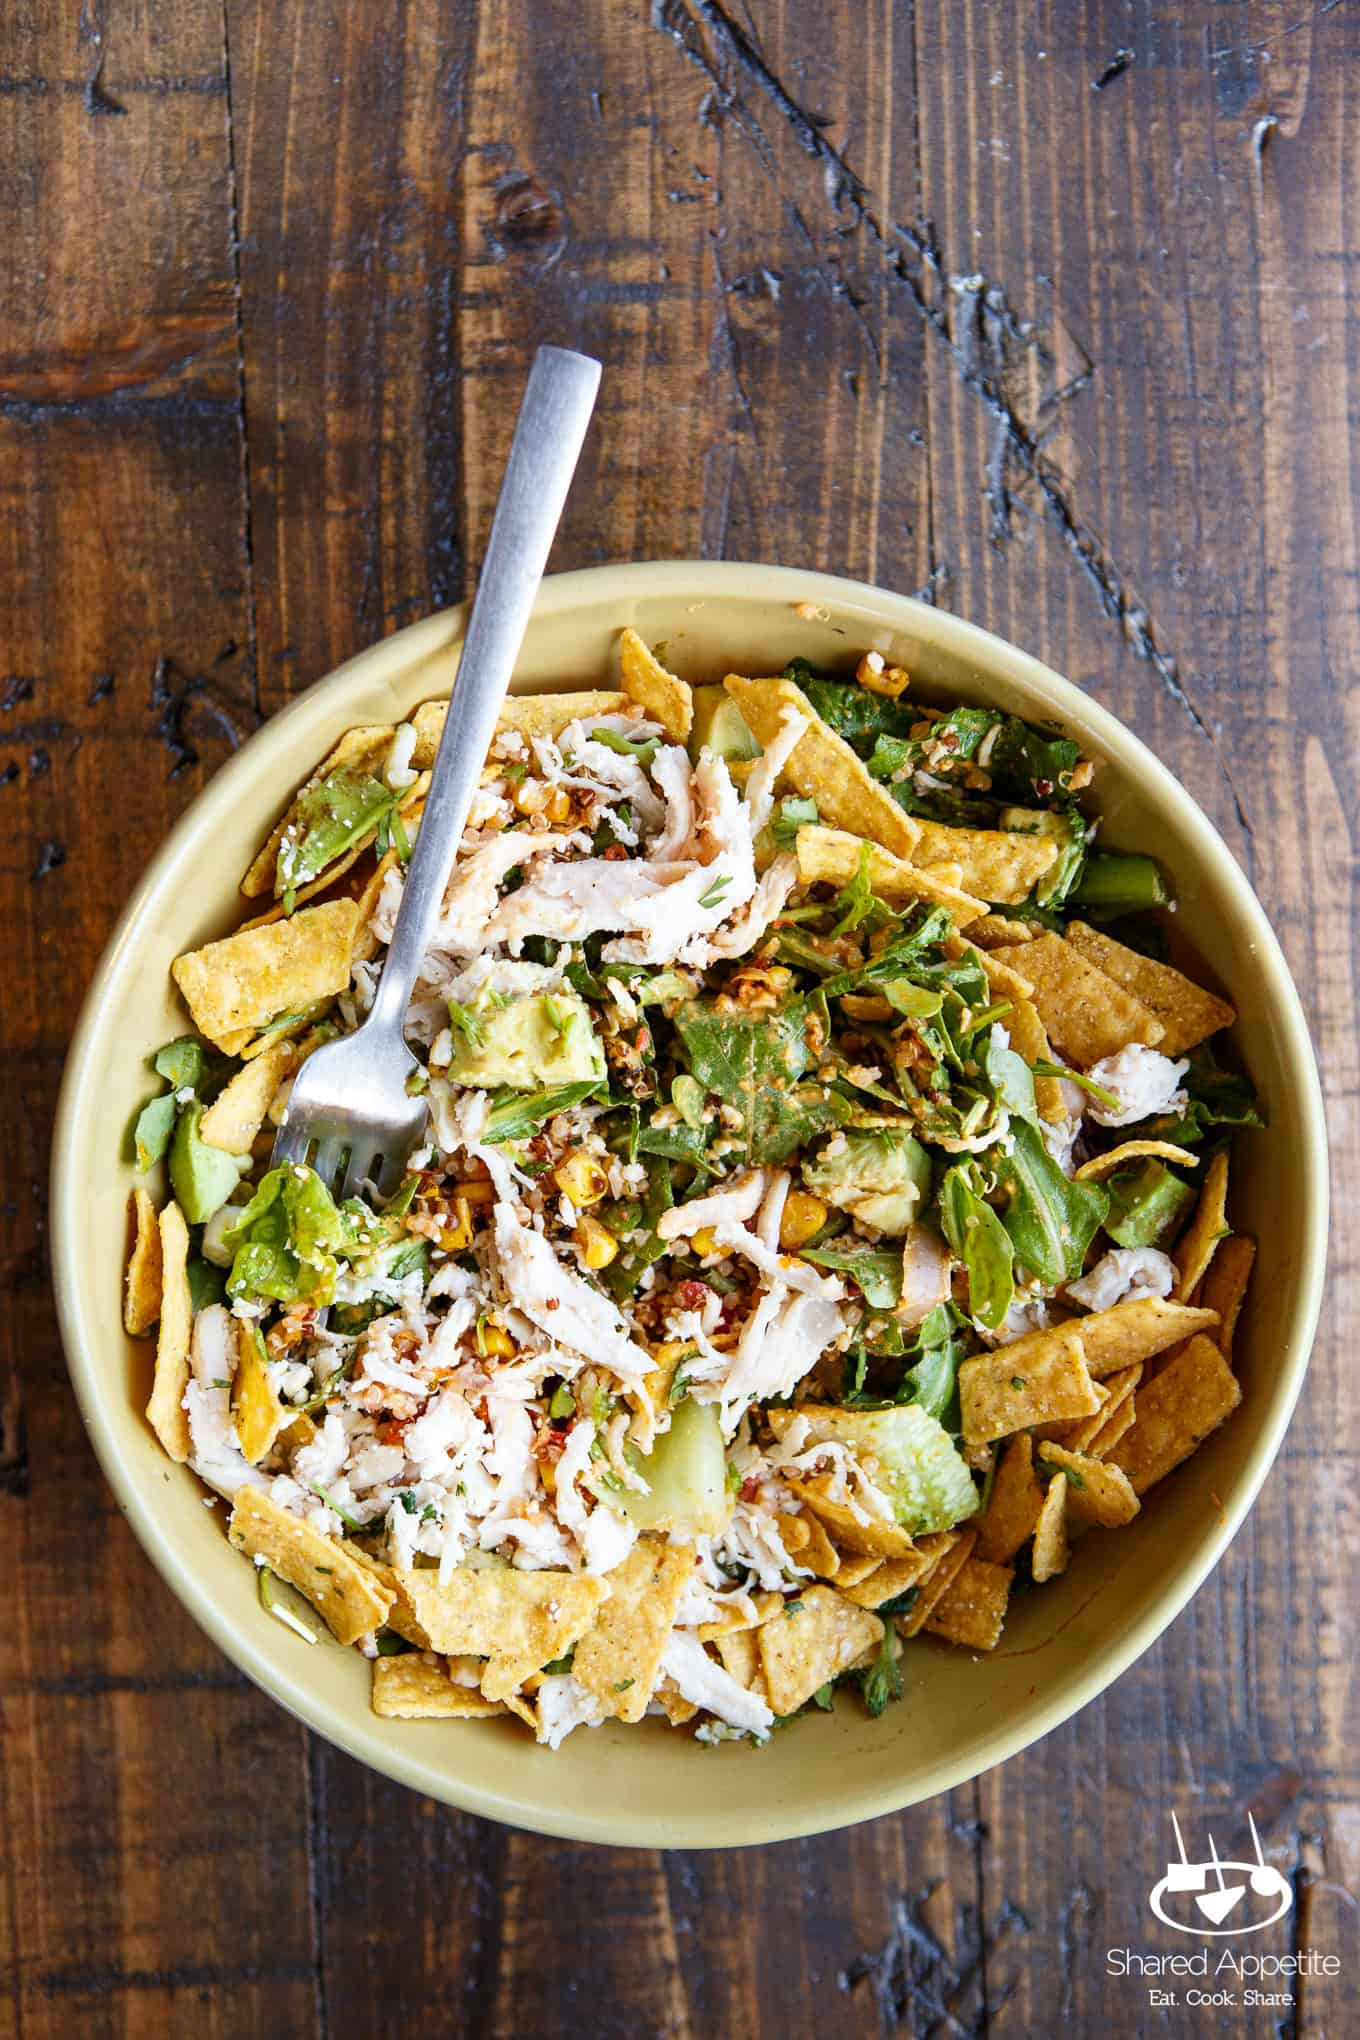 Southwest Chile Lime Ranch Salad at Panera